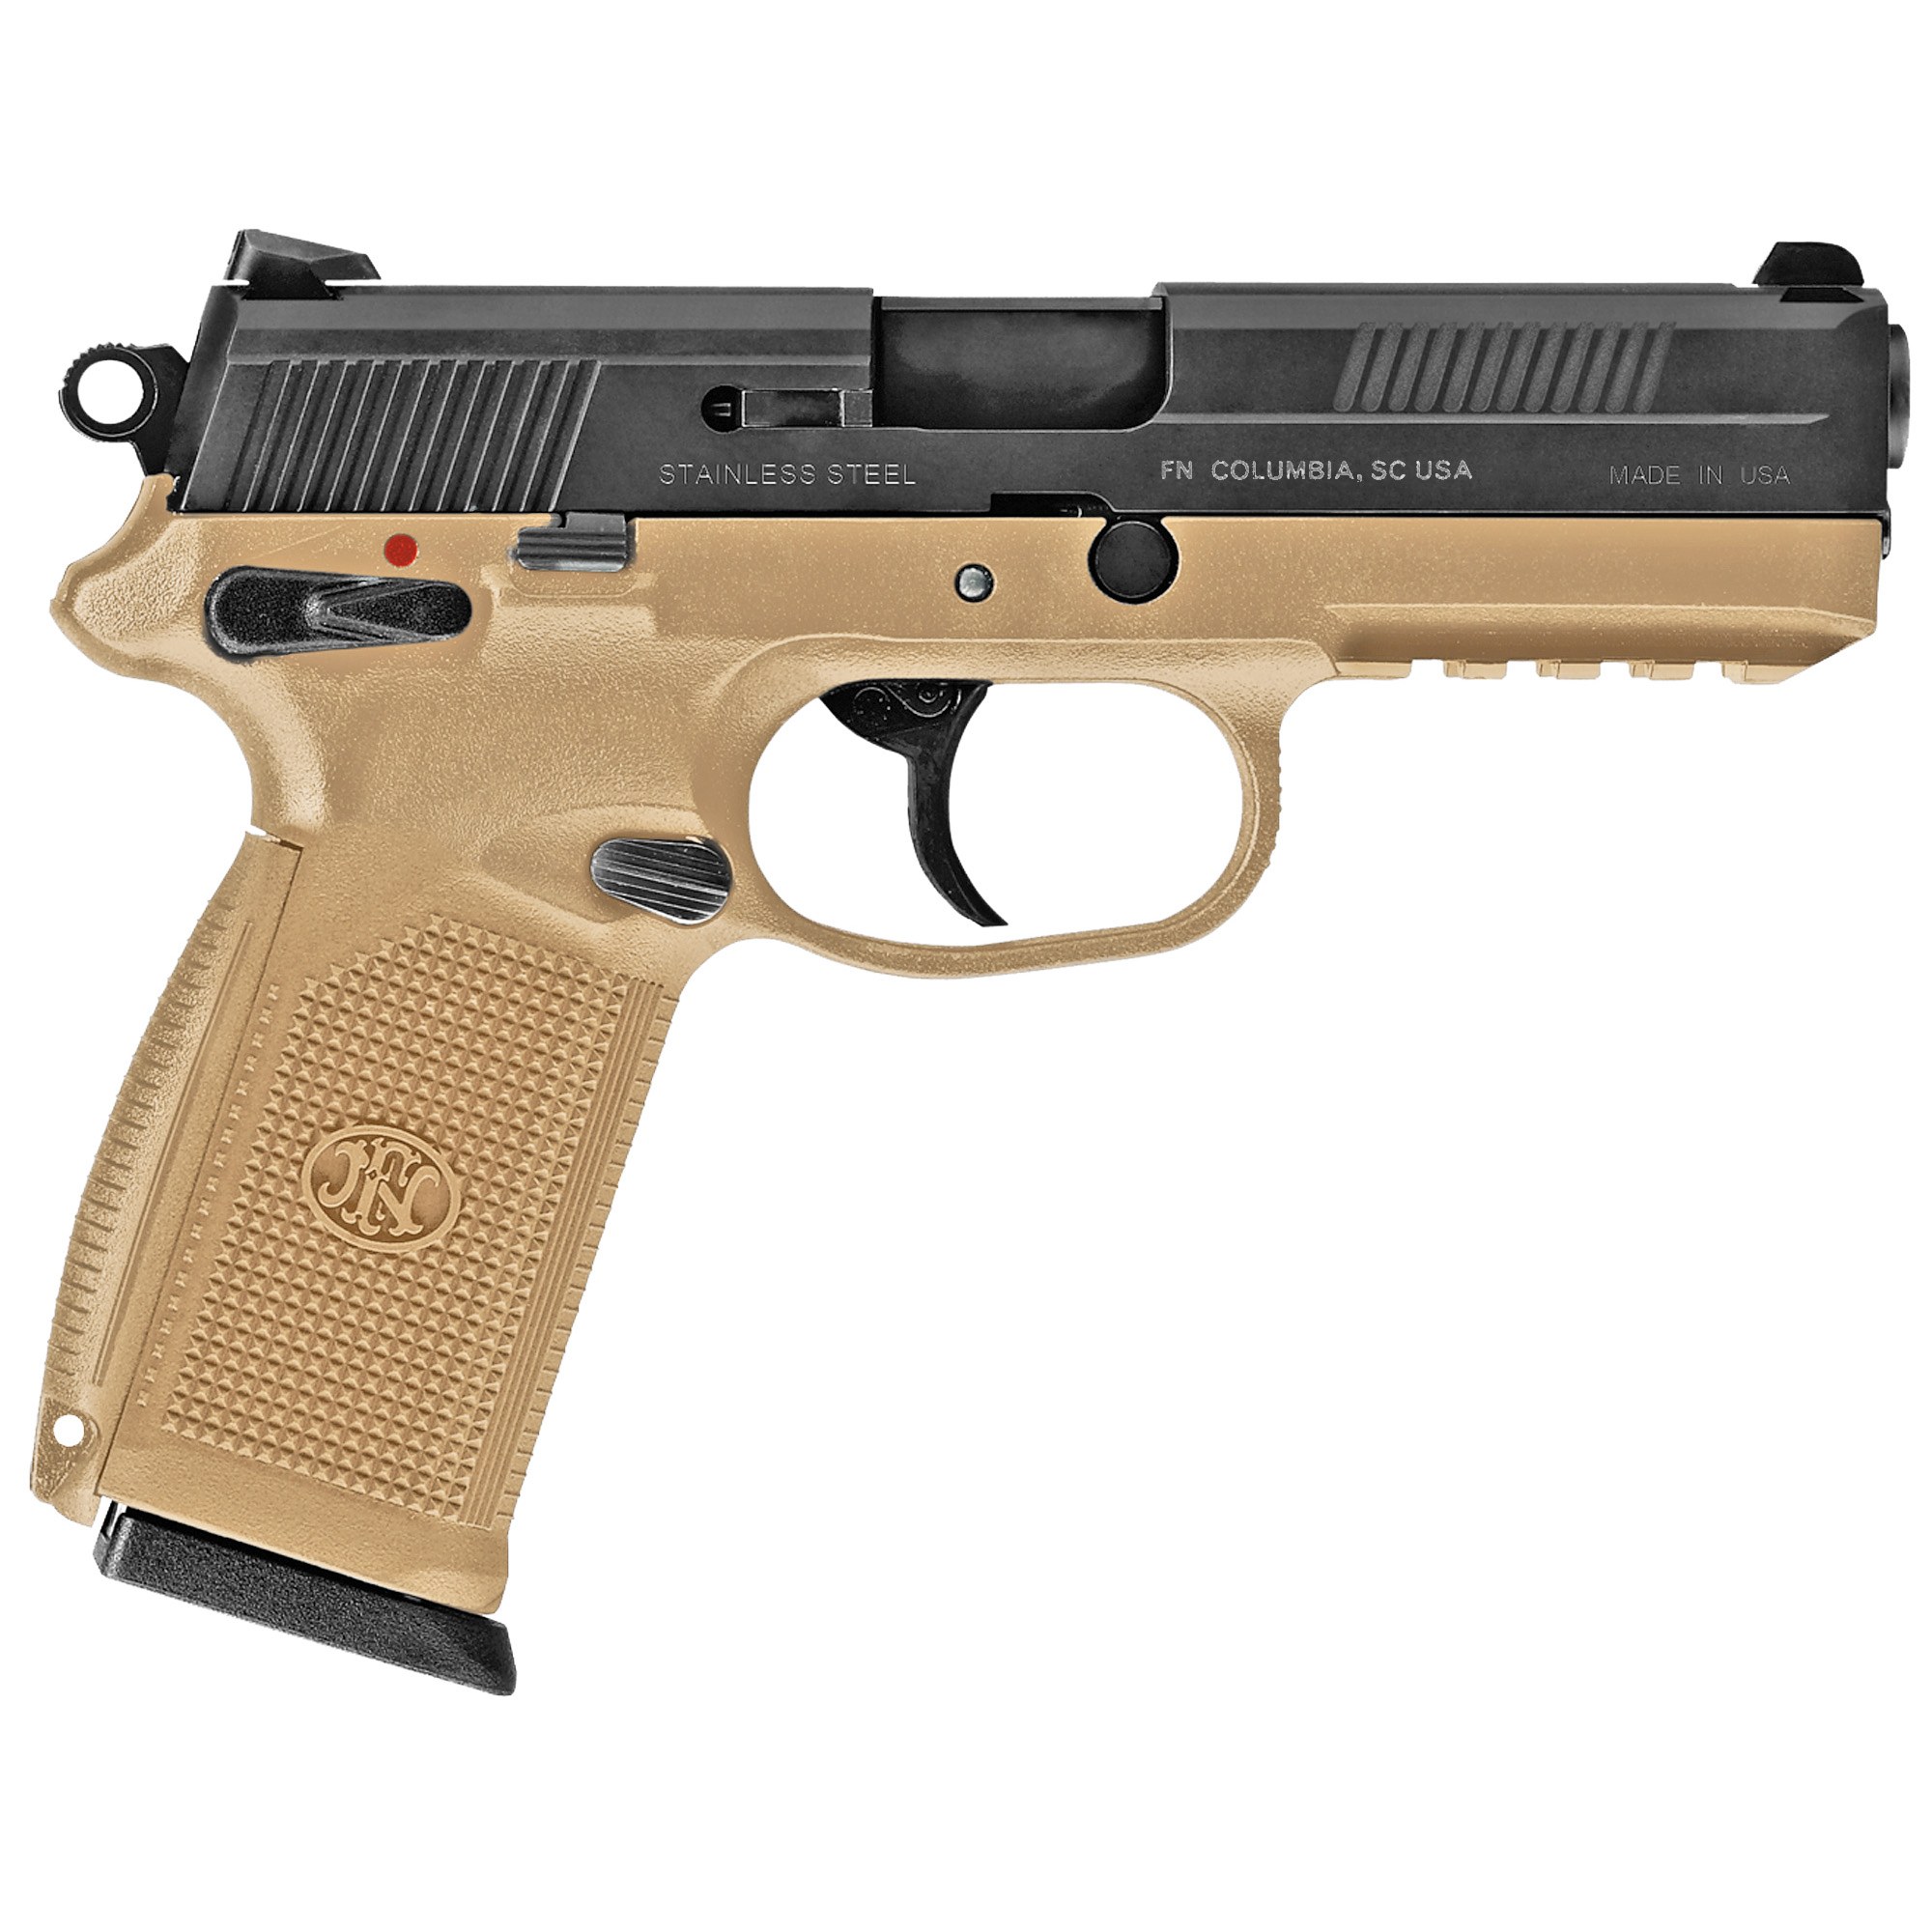 """The FNX(TM)-45 is the result of years of innovative product development and advanced engineering techniques. Modeled after the FNP(TM)-45 service pistol introduced in 2007 under the U.S. Joint Combat Pistol Program"""" the FNX(TM)-45 is a double-action/single-action hammer-driven pistol with highly enhanced ergonomics. Its manual safety/decocking levers"""" slide stop lever"""" and magazine release are all fully ambidextrous for ease of operation with either hand and from any firing position."""